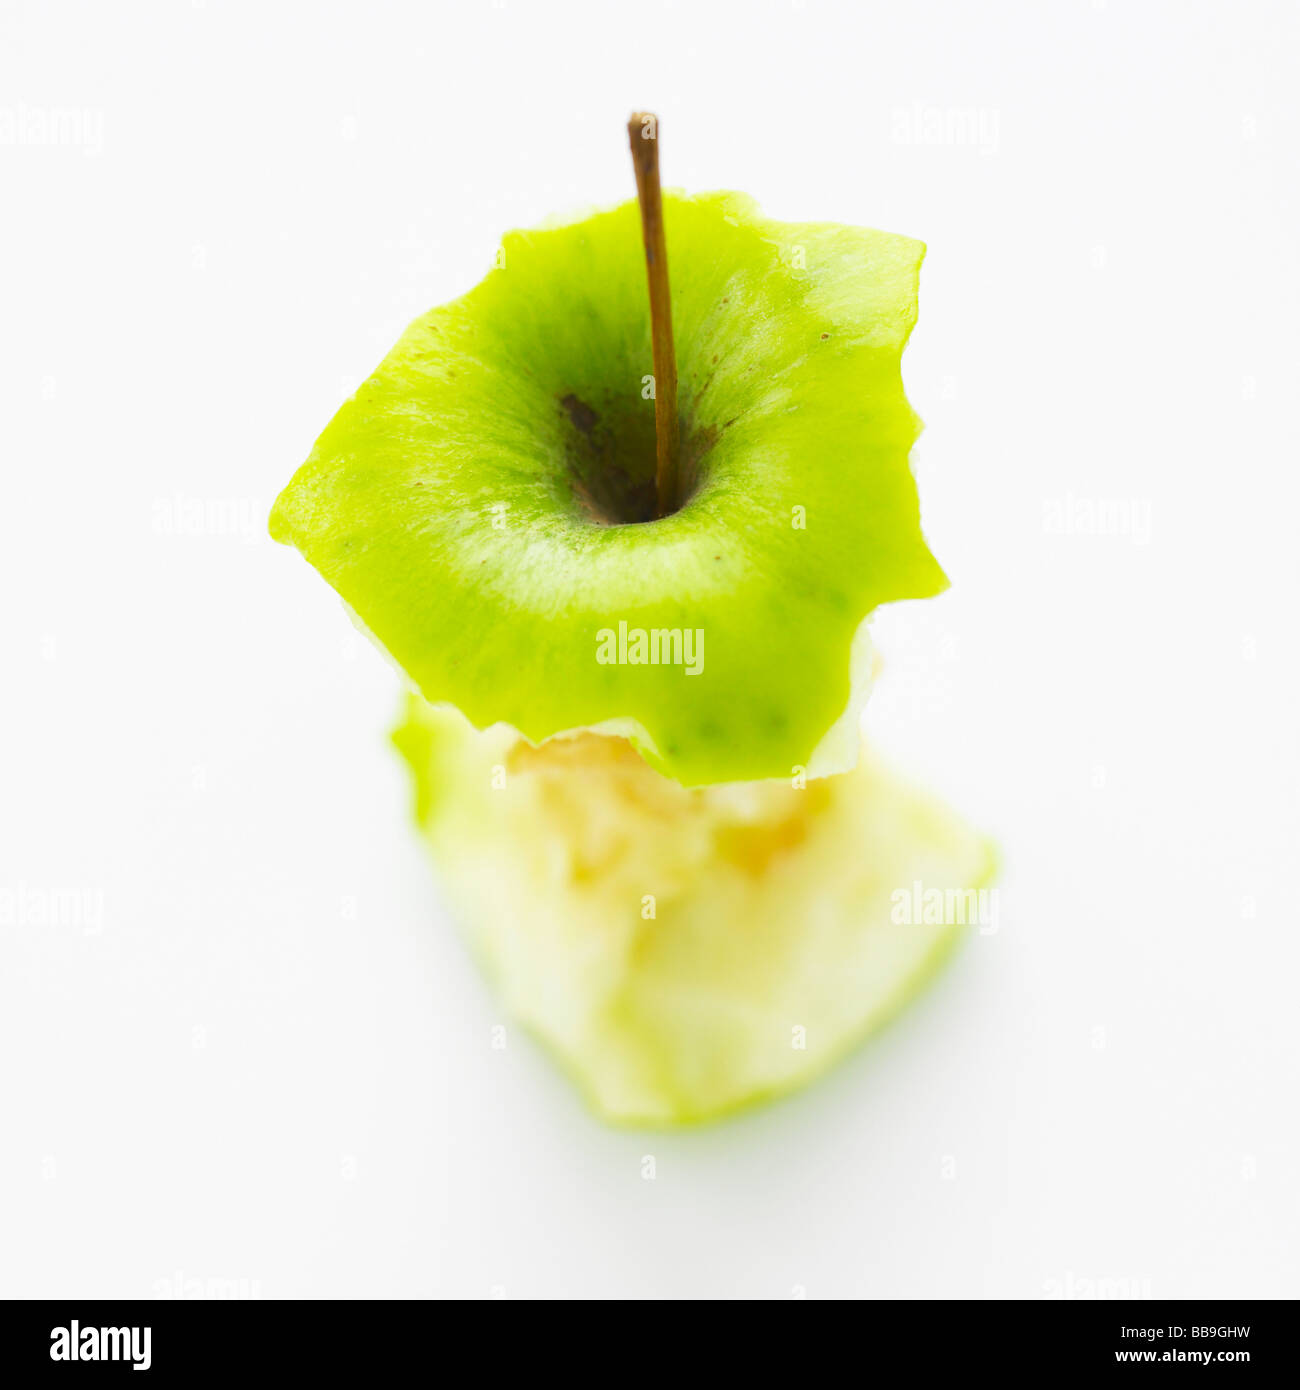 An apple core isolated on a white background, shot with shallow focus to emphasise the strong graphic shape. - Stock Image